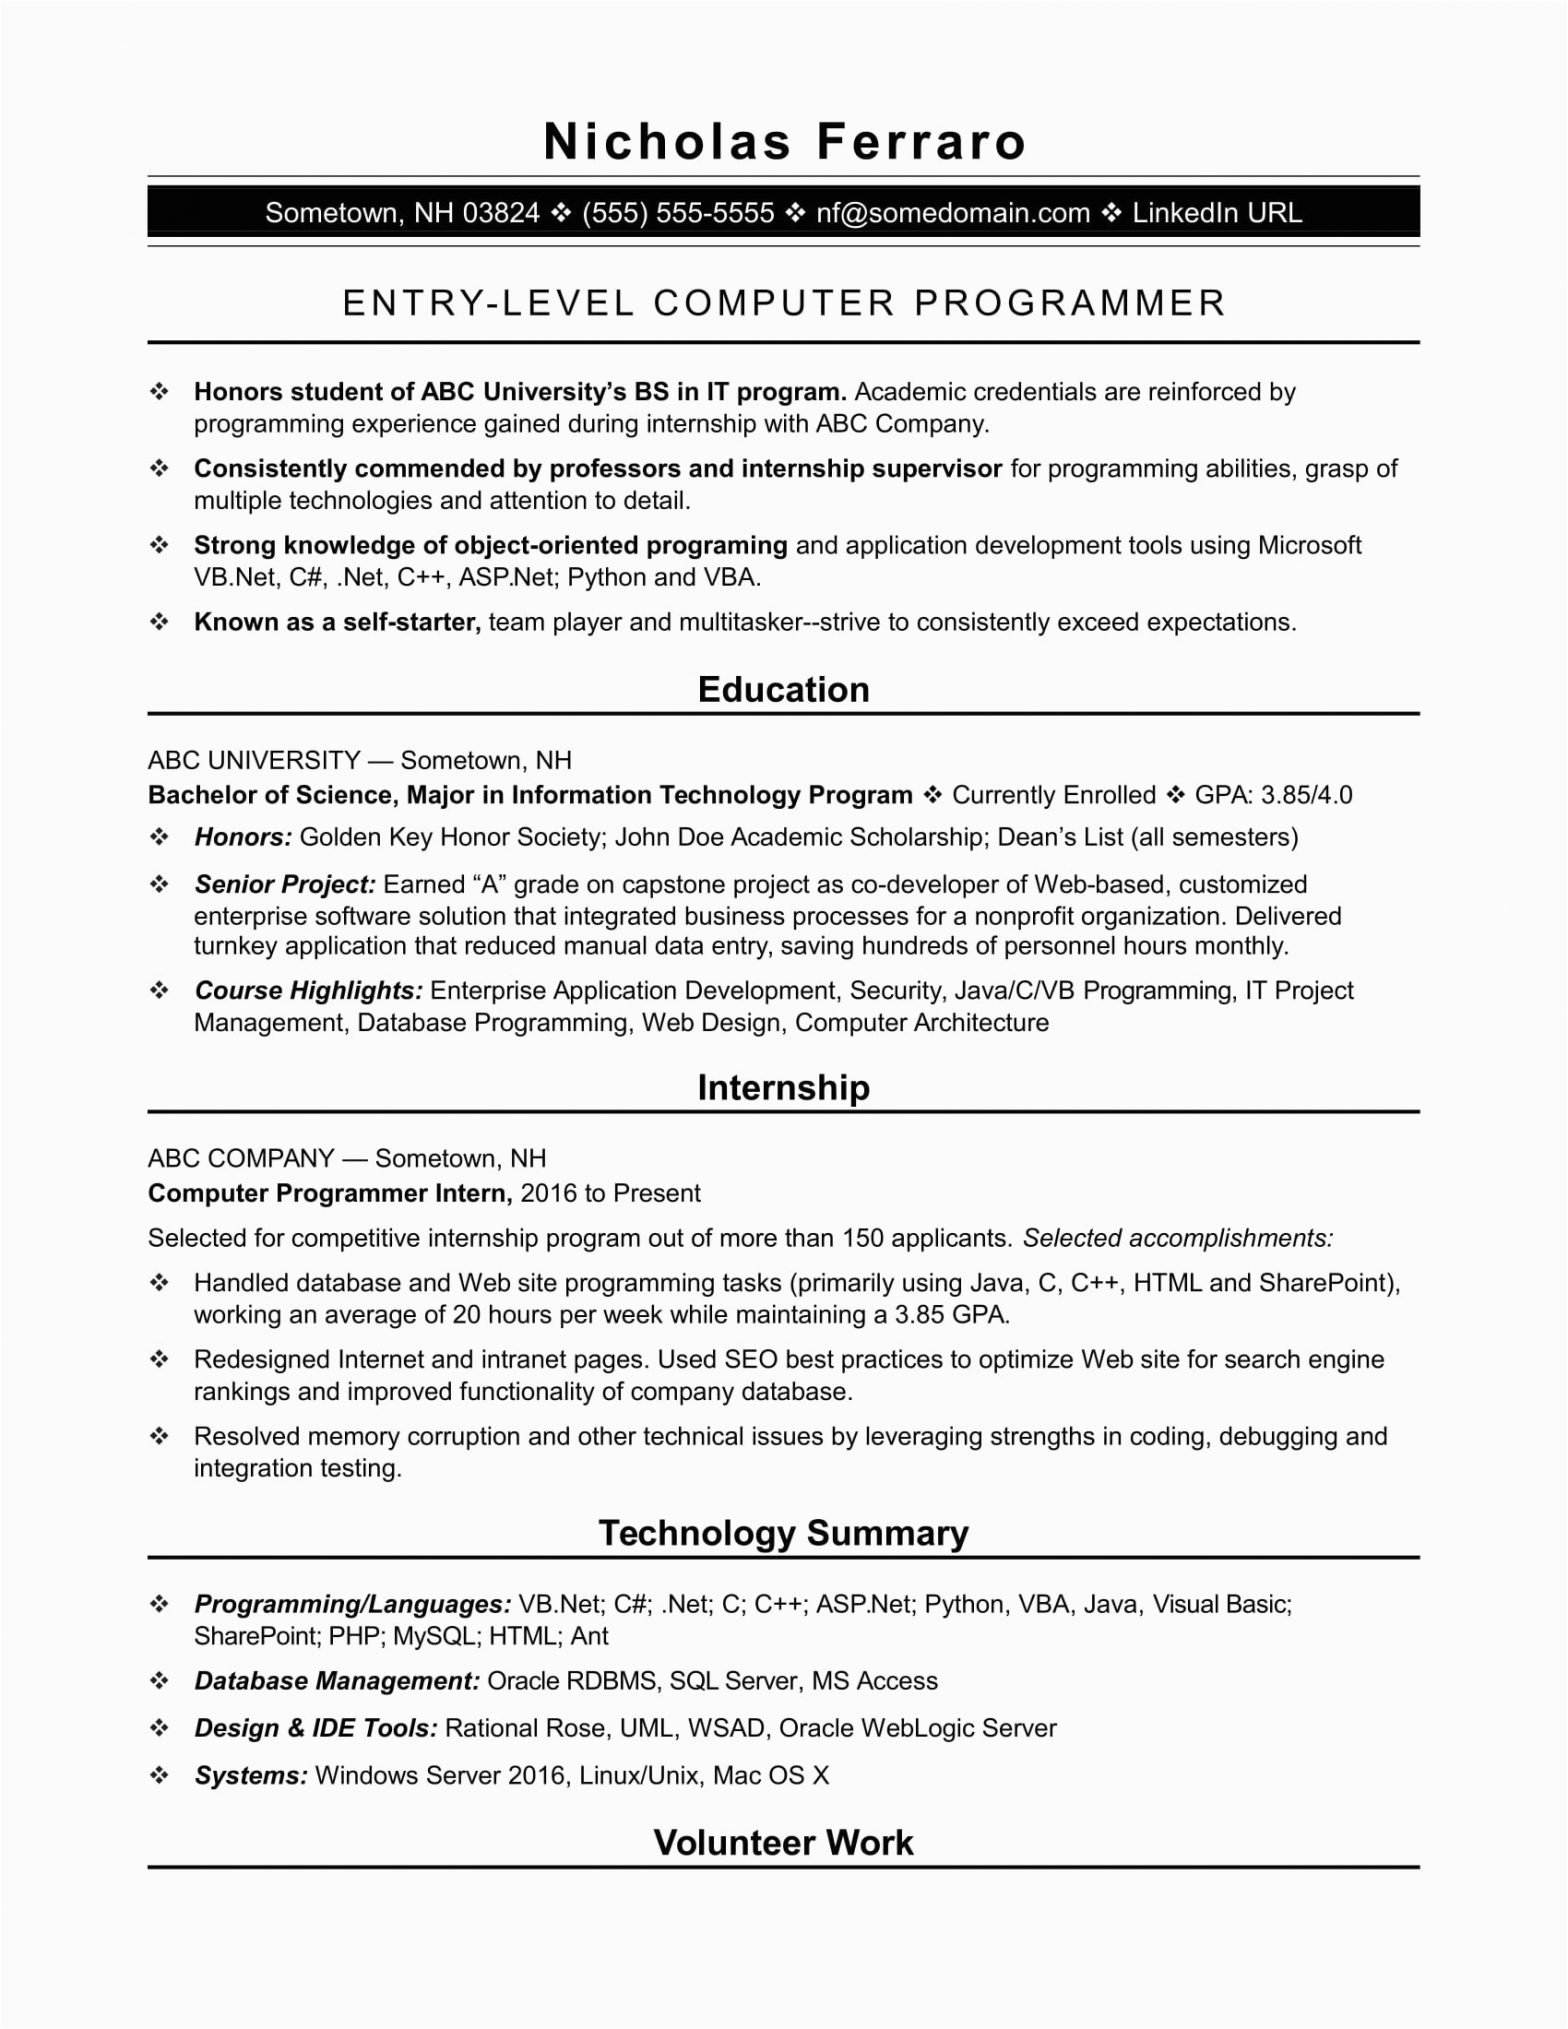 Sample Resume for An Entry Level Computer Programmer Sample Resume for An Entry Level Puter Programmer